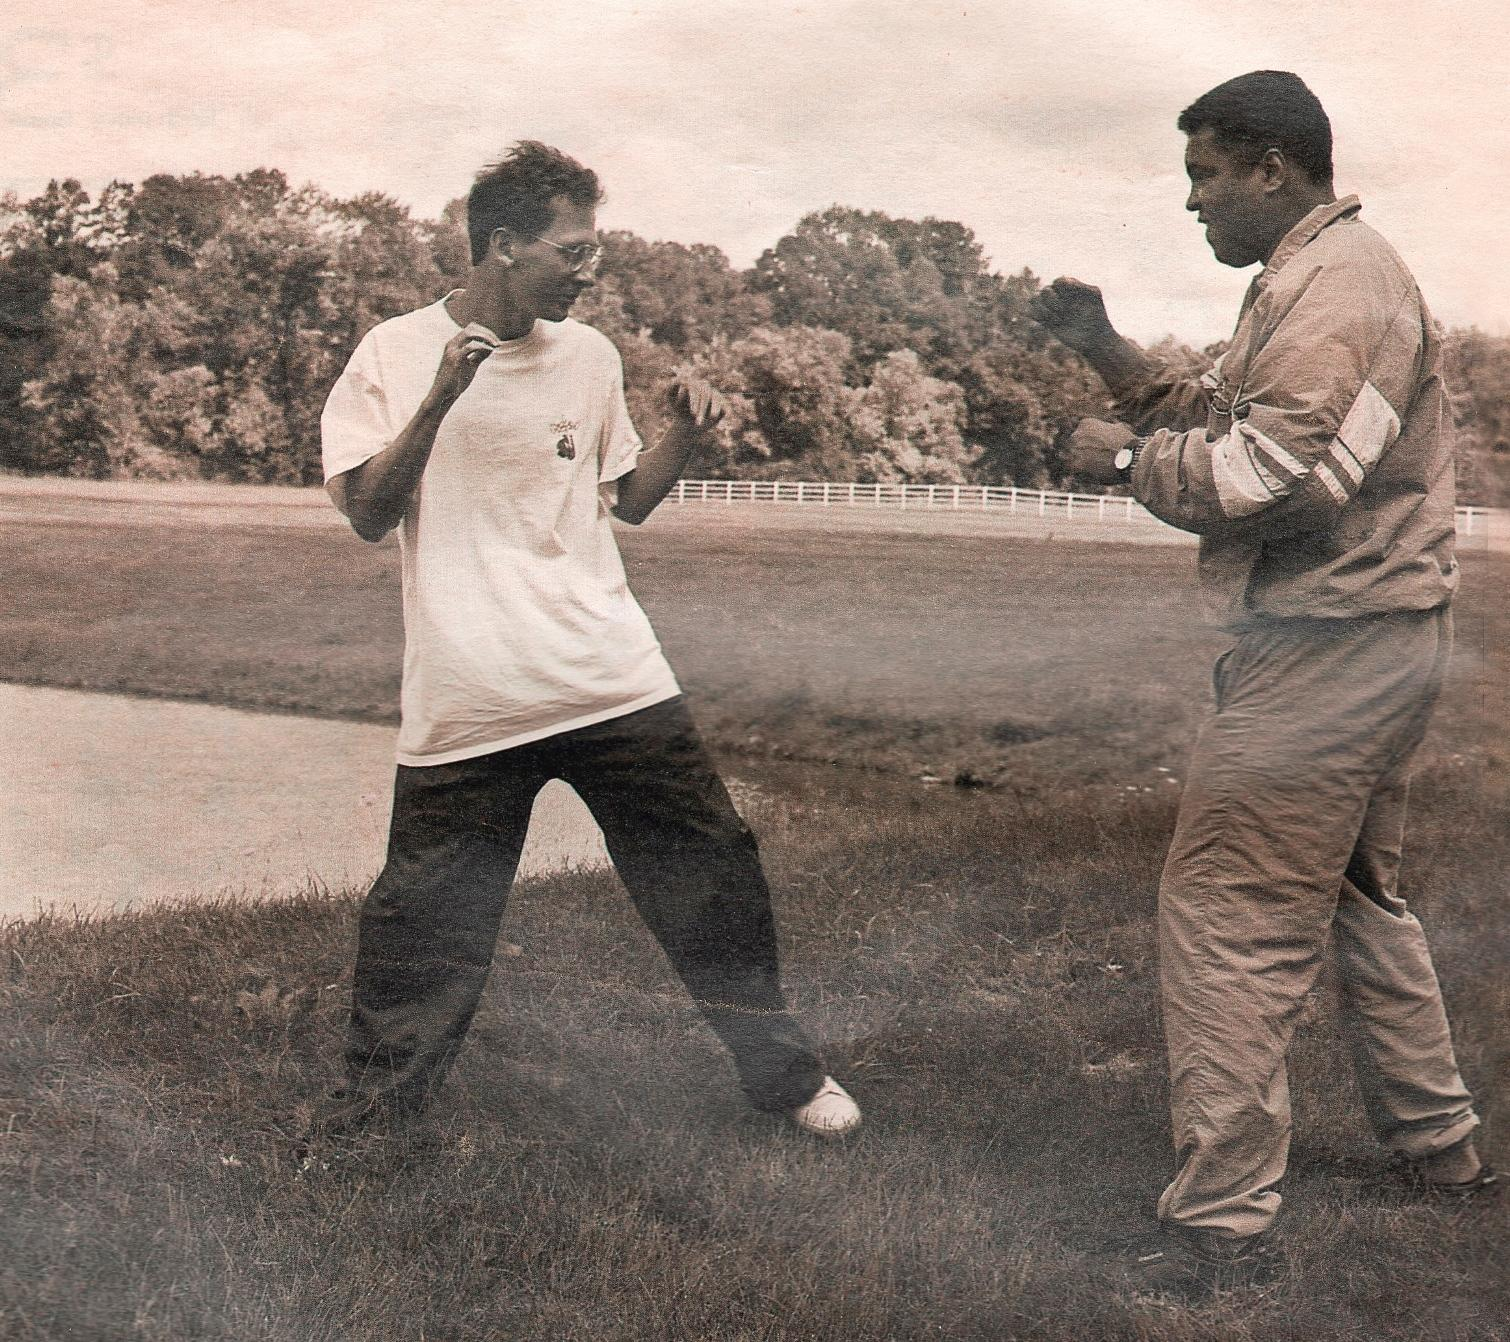 Approaching_Ali_10_-_Davis_Miller_and_Muhammad_Ali_-_photo_courtesy_of_Davis_Miller